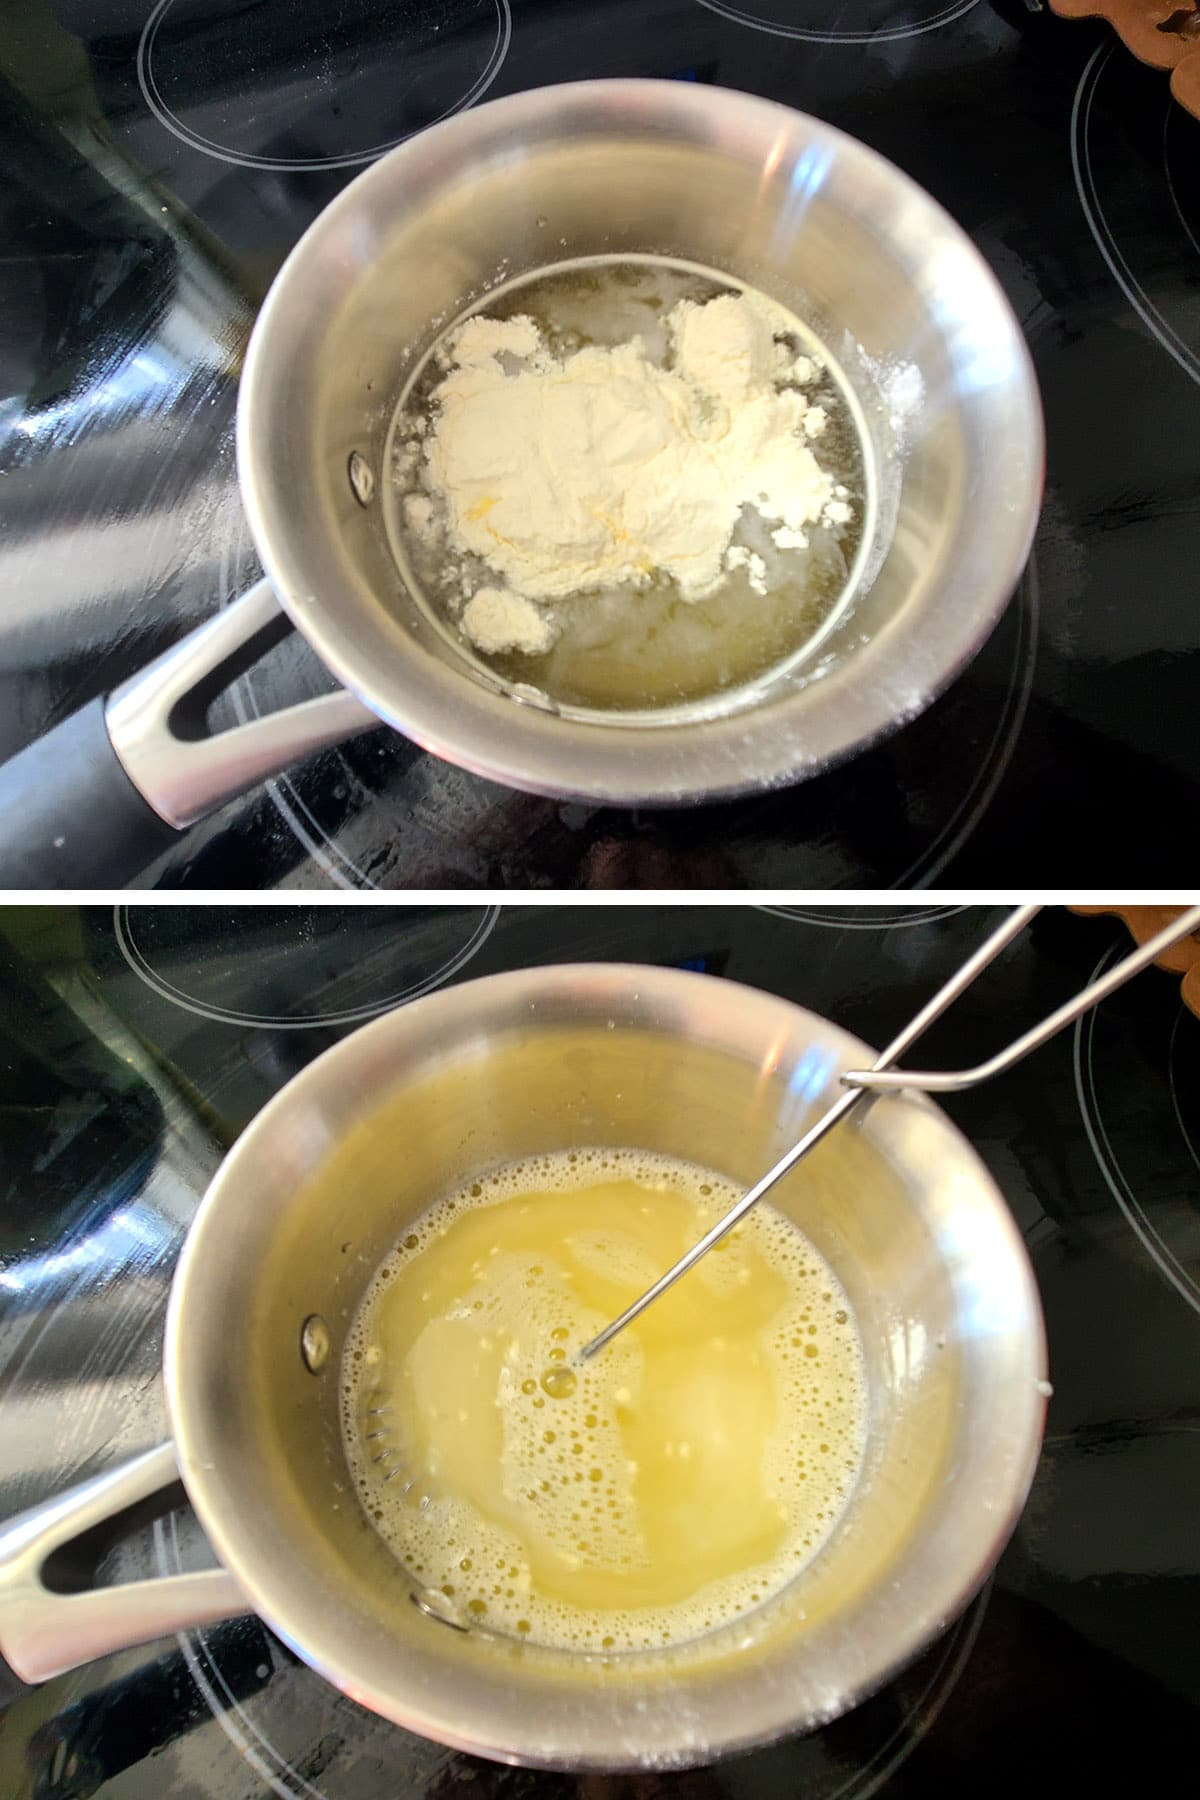 Yellow BCAA powder, before and ater being stirred into the water.